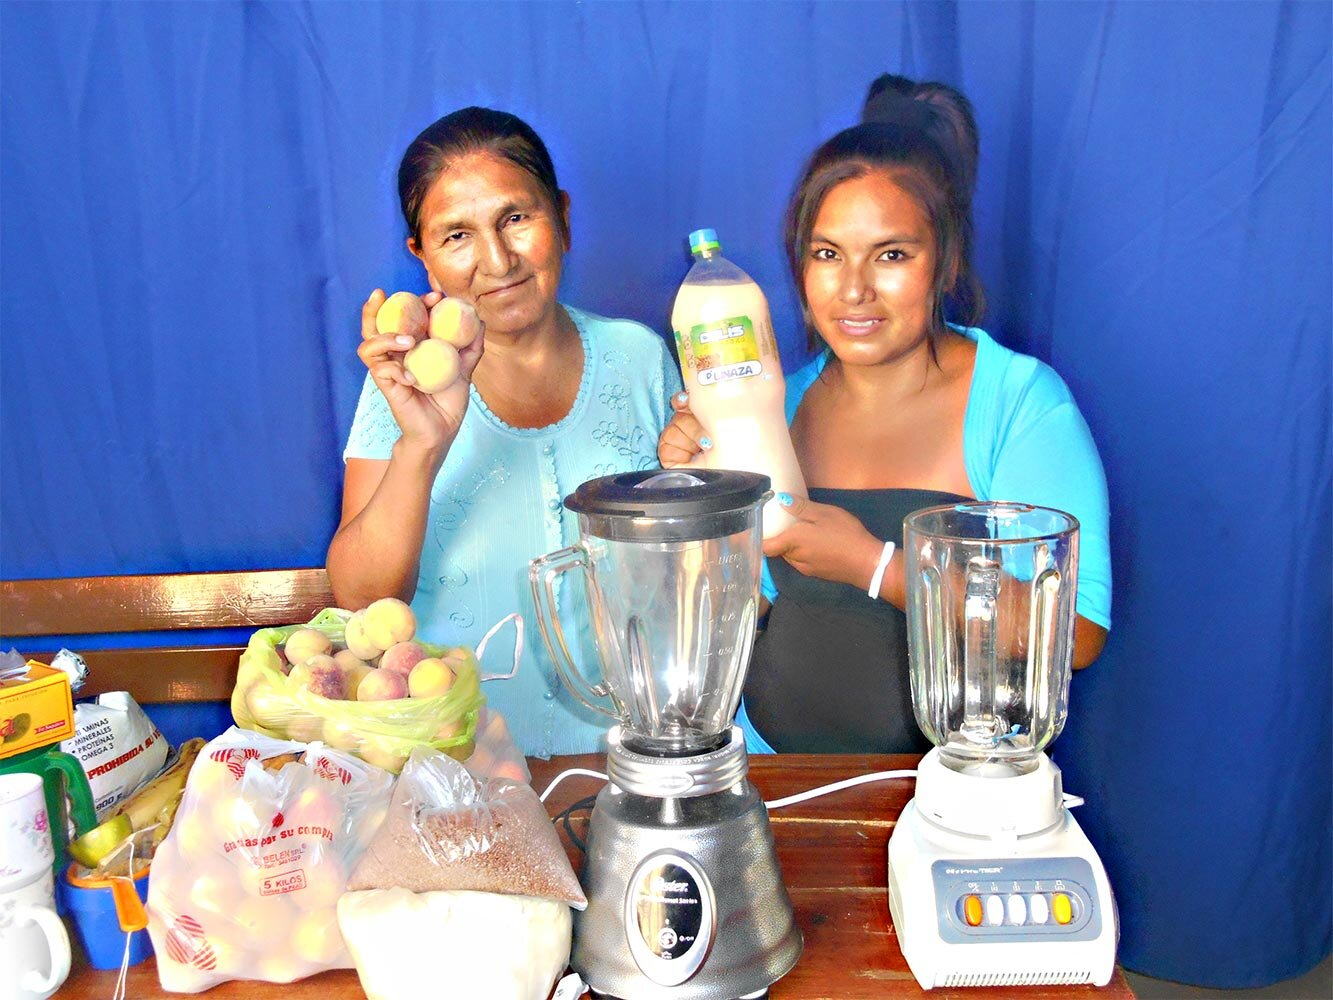 Valentina and her daughter Esther show off their juice business in Bolivia.